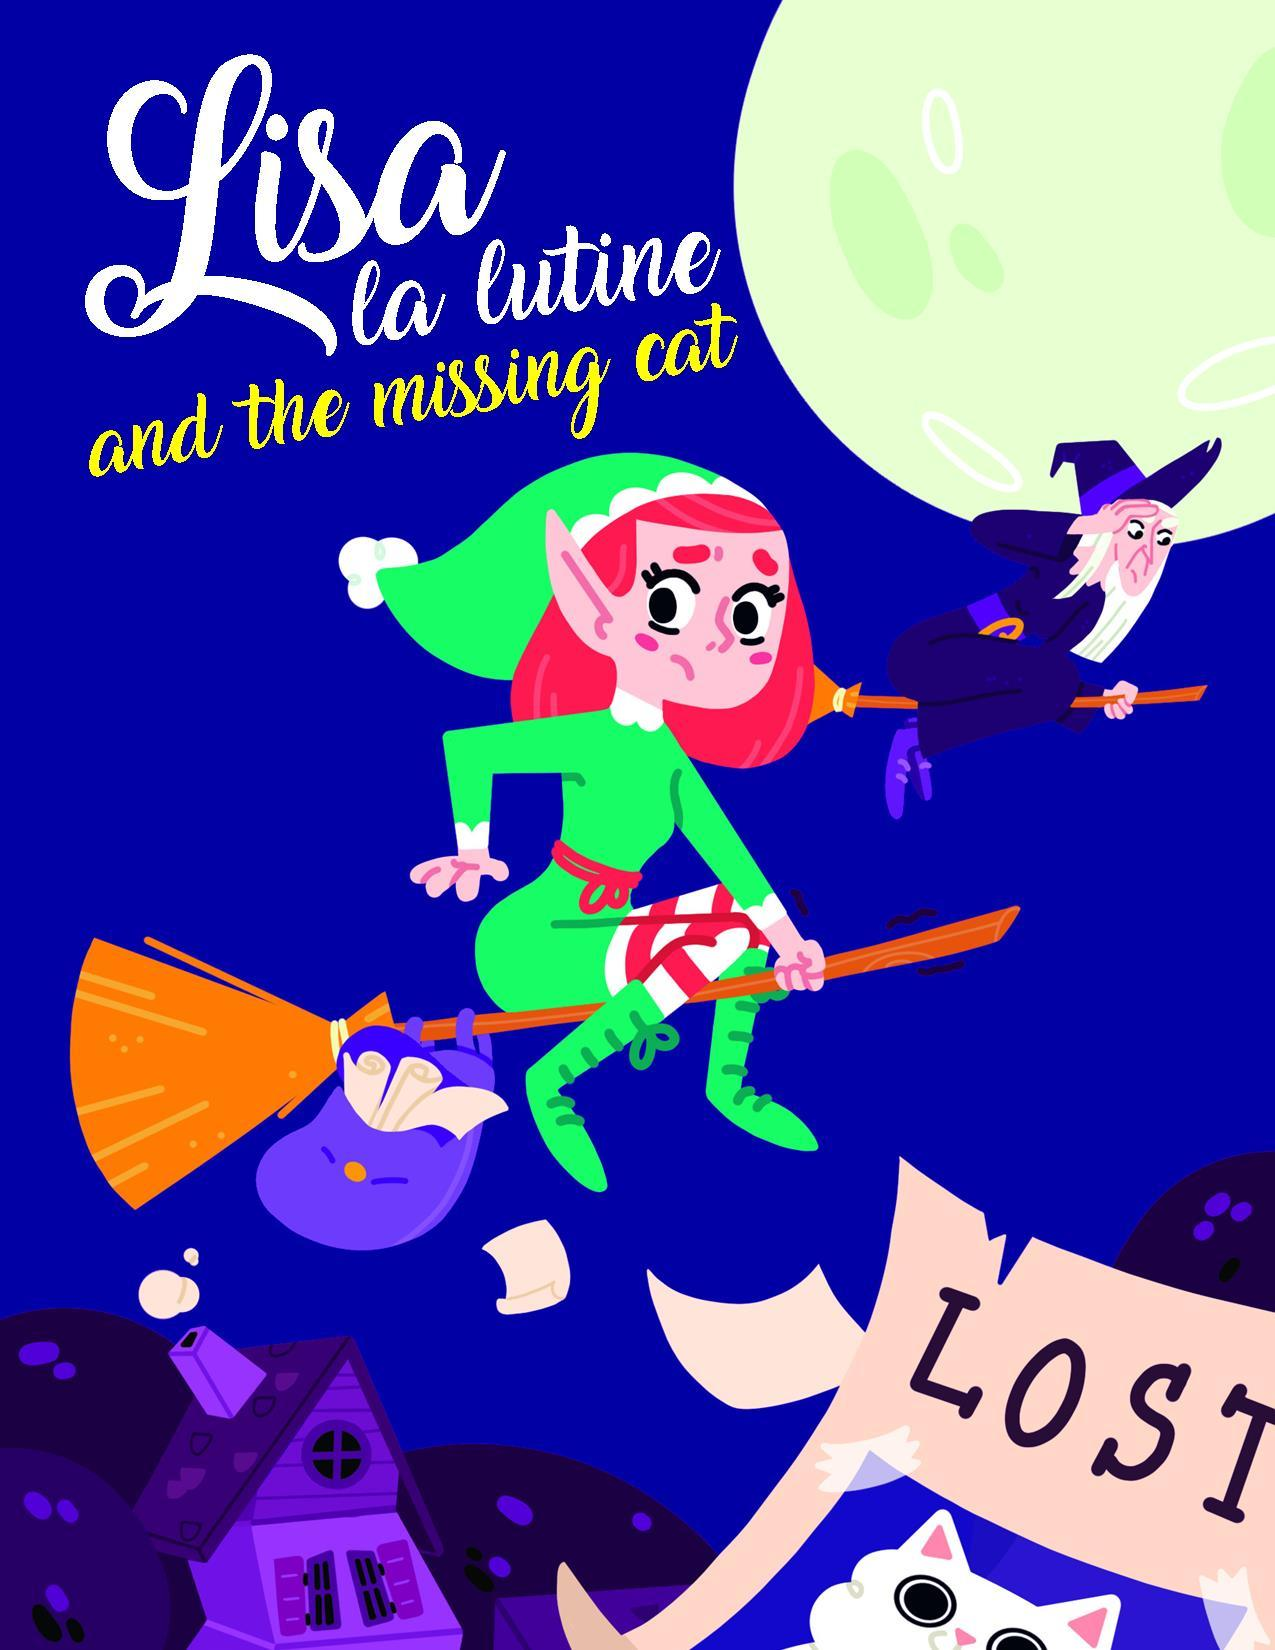 LISA LA LUTINE AND THE MISSING CAT